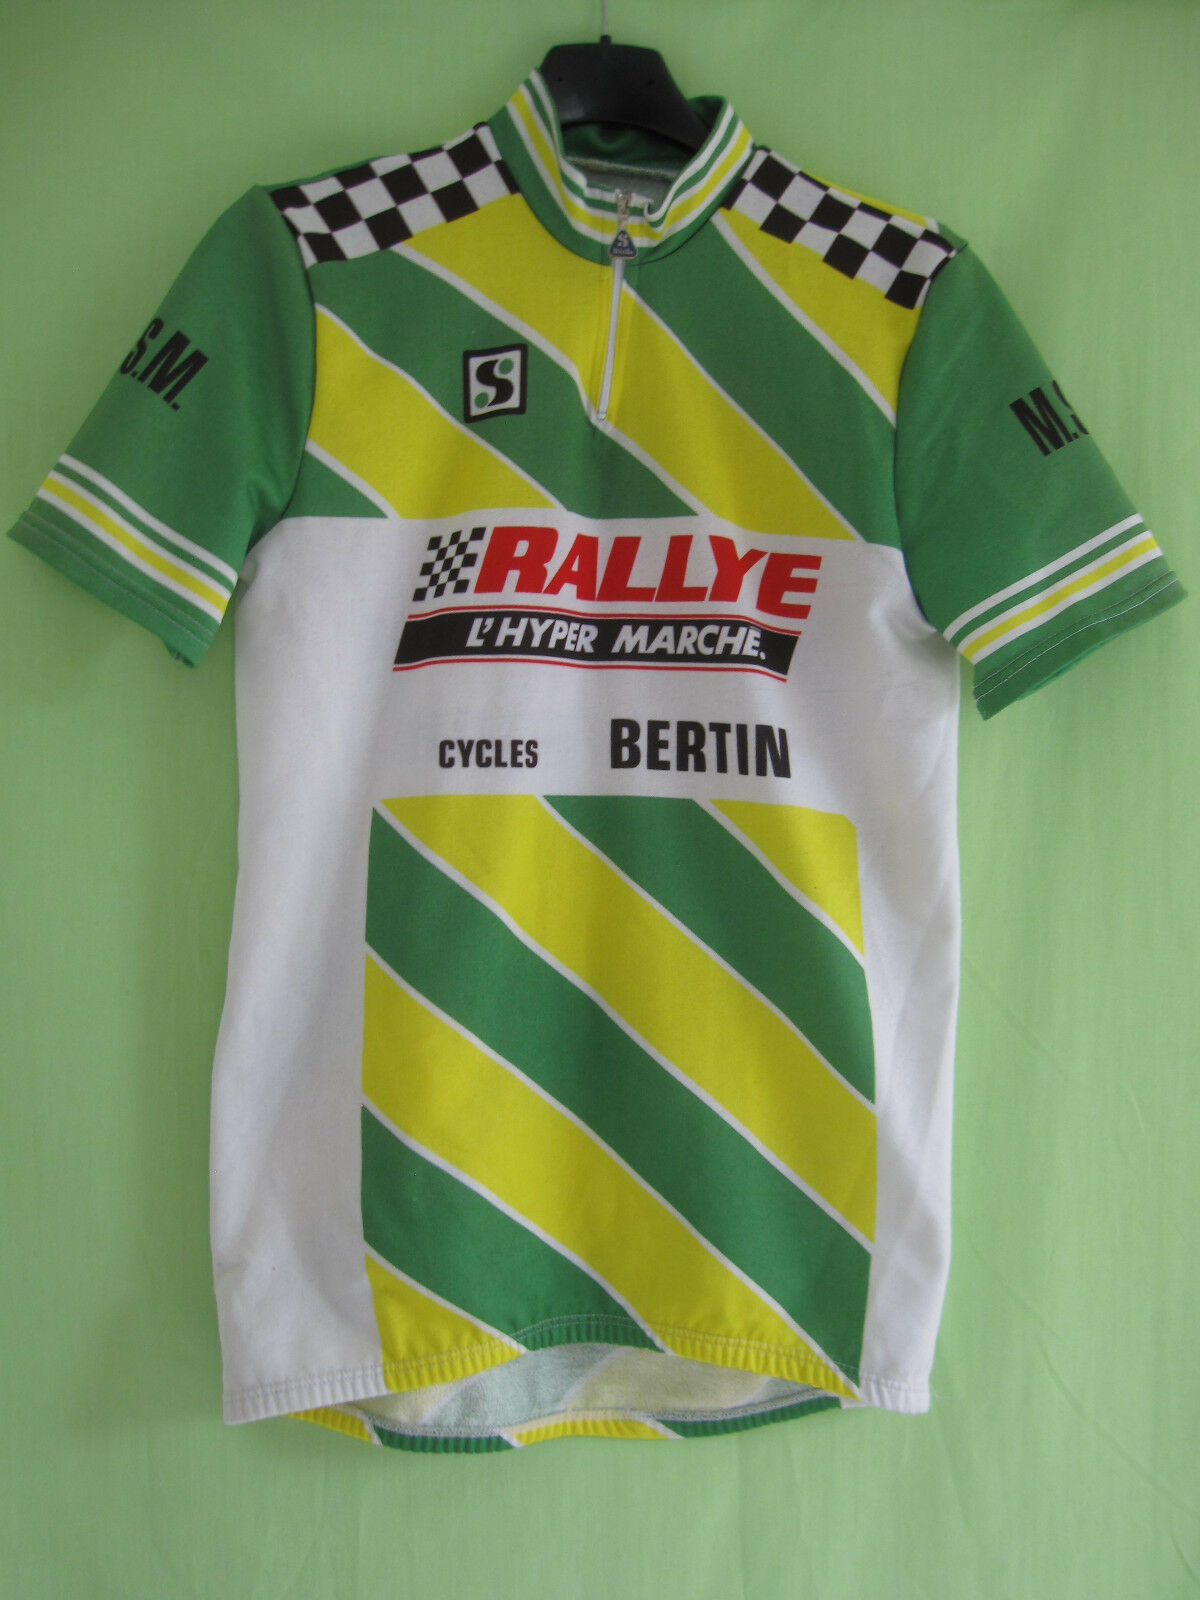 Maillot cycliste RALLYE Cycles Bertin MSM Sibille Jersey Vintage - S